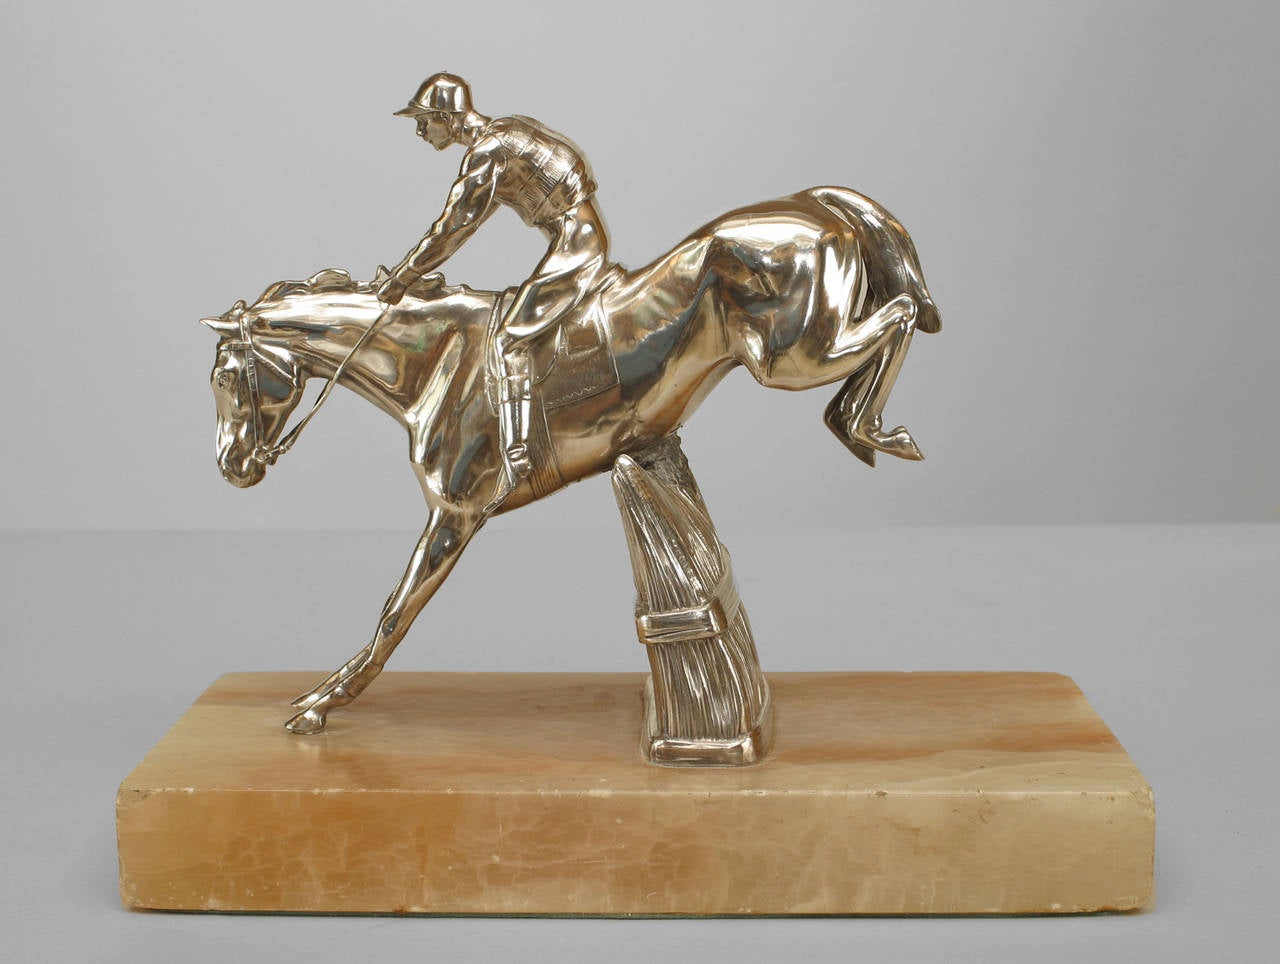 Nineteenth century English silver-plated bronze figure of horse and jockey jumping a grass fence on a rectangular white onyx base.